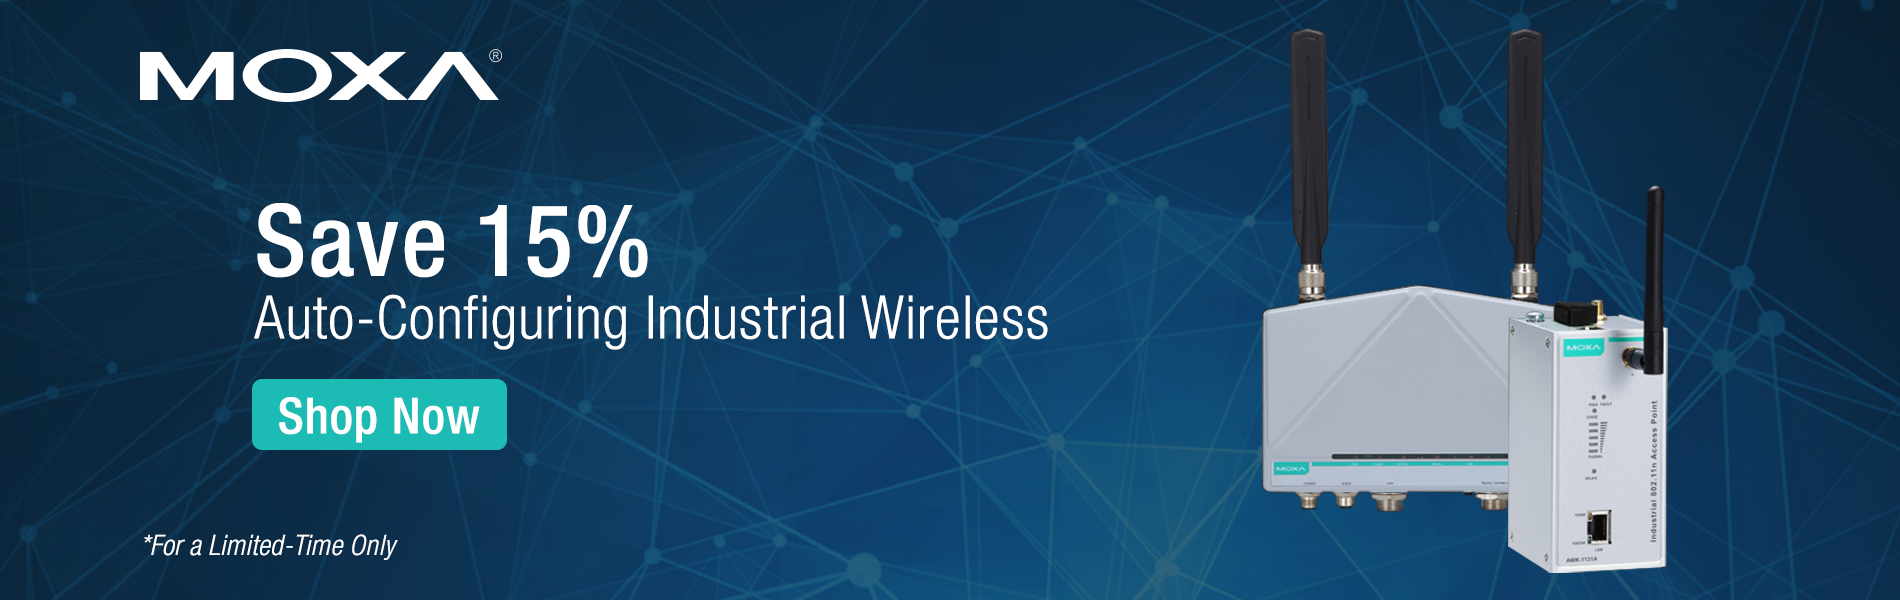 Save 15% on Auto Configuring Industrial Wireless